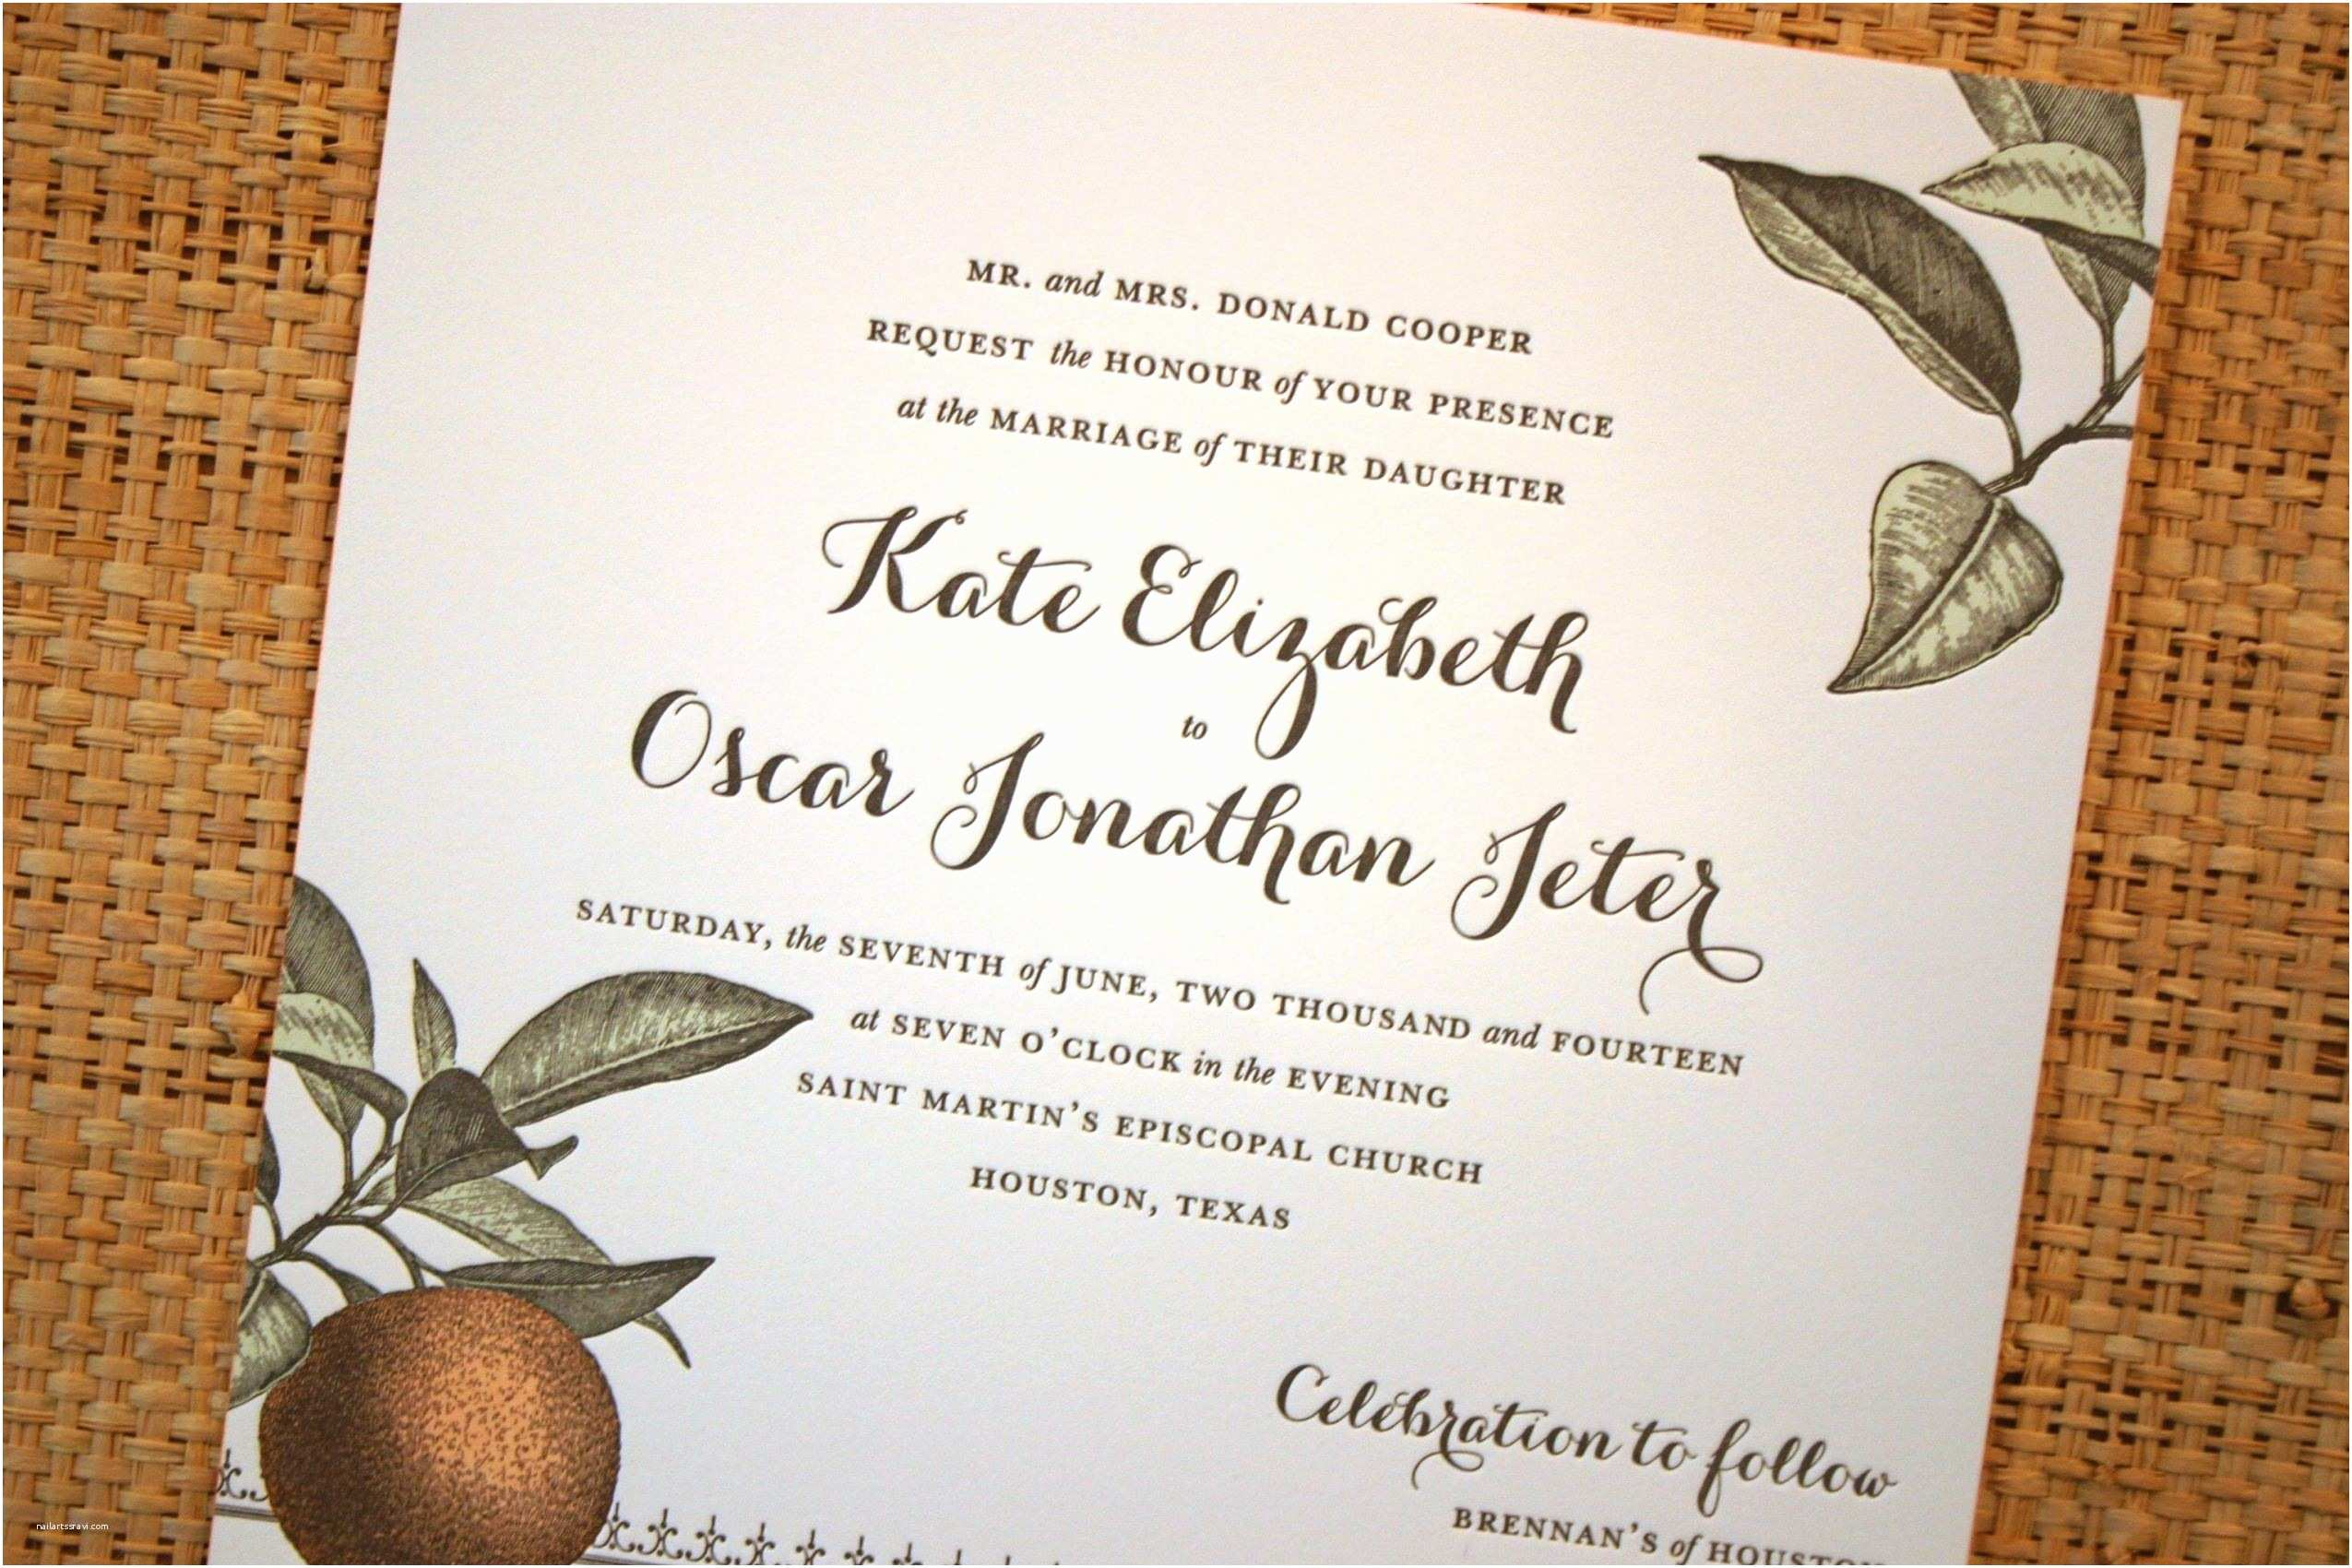 What Do You Say On A Wedding Invitation Awesome What Does A Wedding Invitation Say 4 What Should